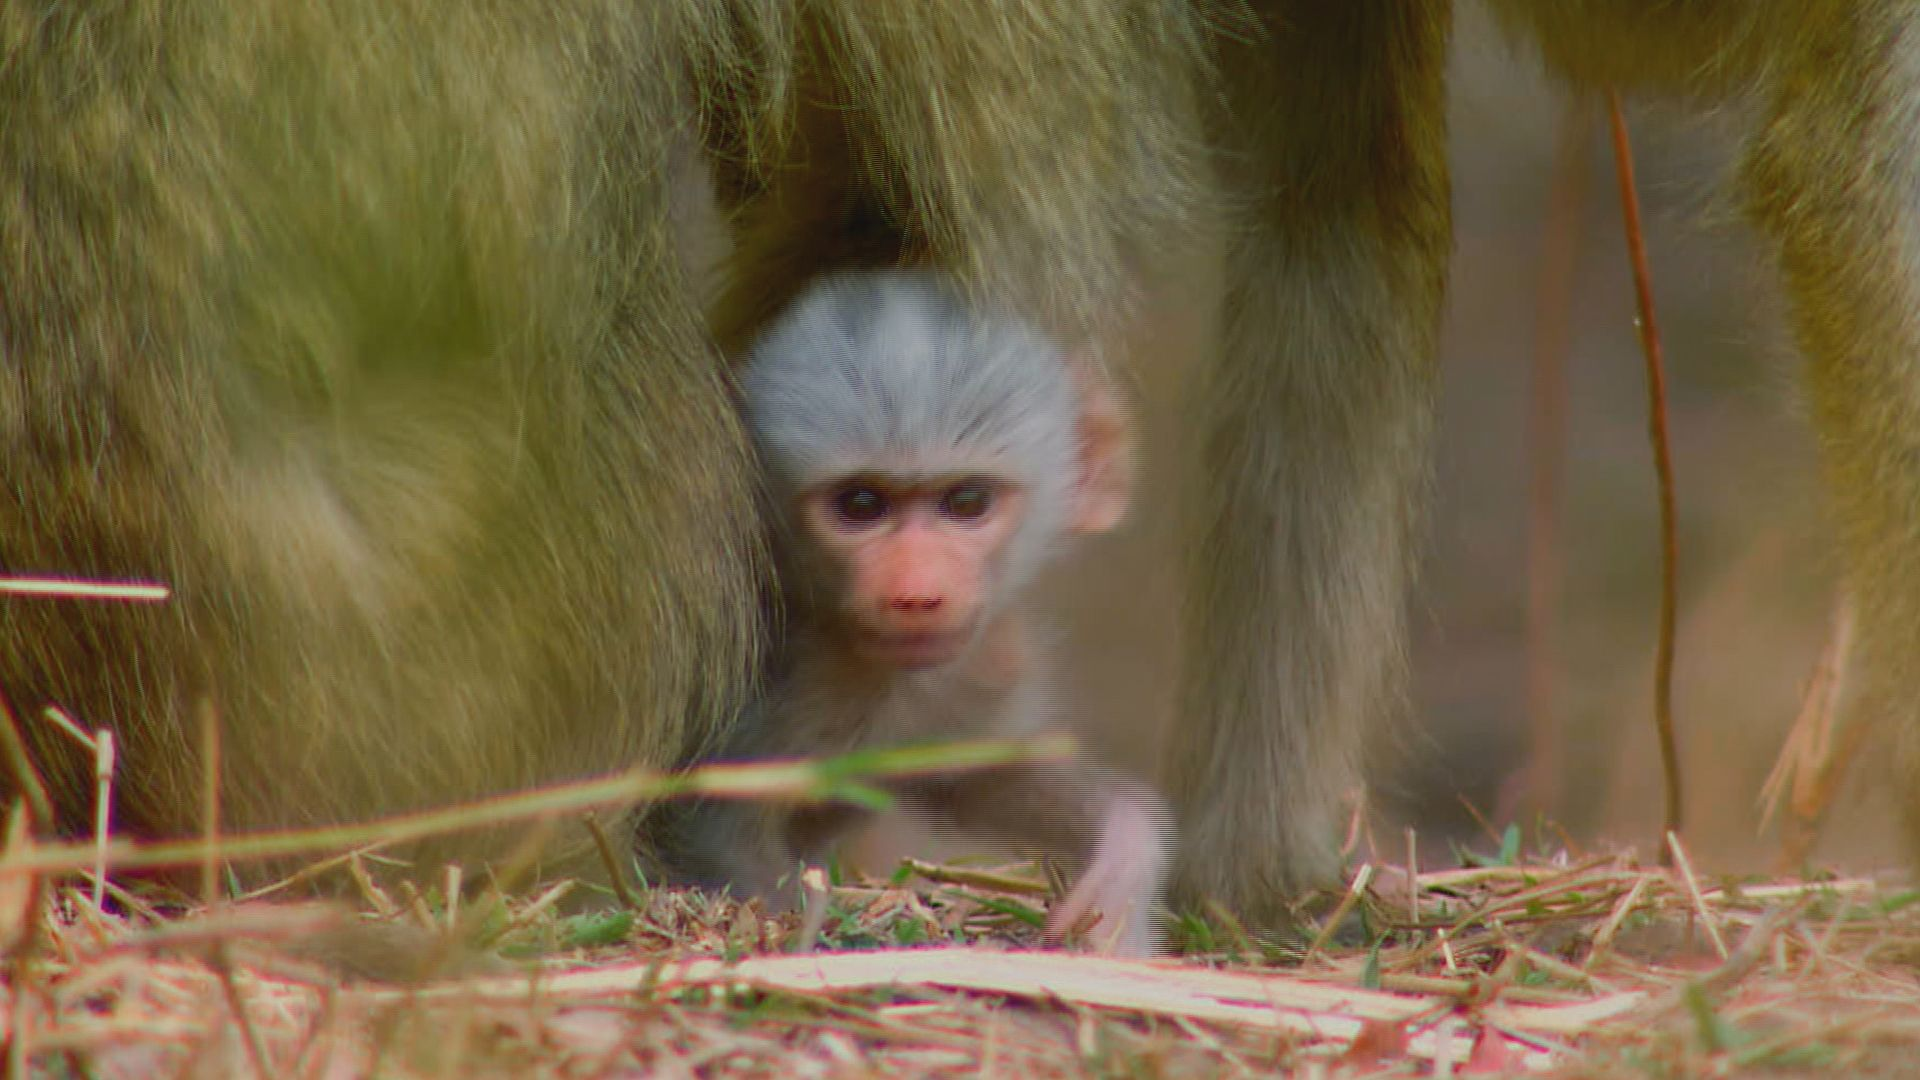 Yellow baboon (Papio cynocephalus) baby looking out from under its mother. This is from Deadly... [Photo of the day - September 2021]